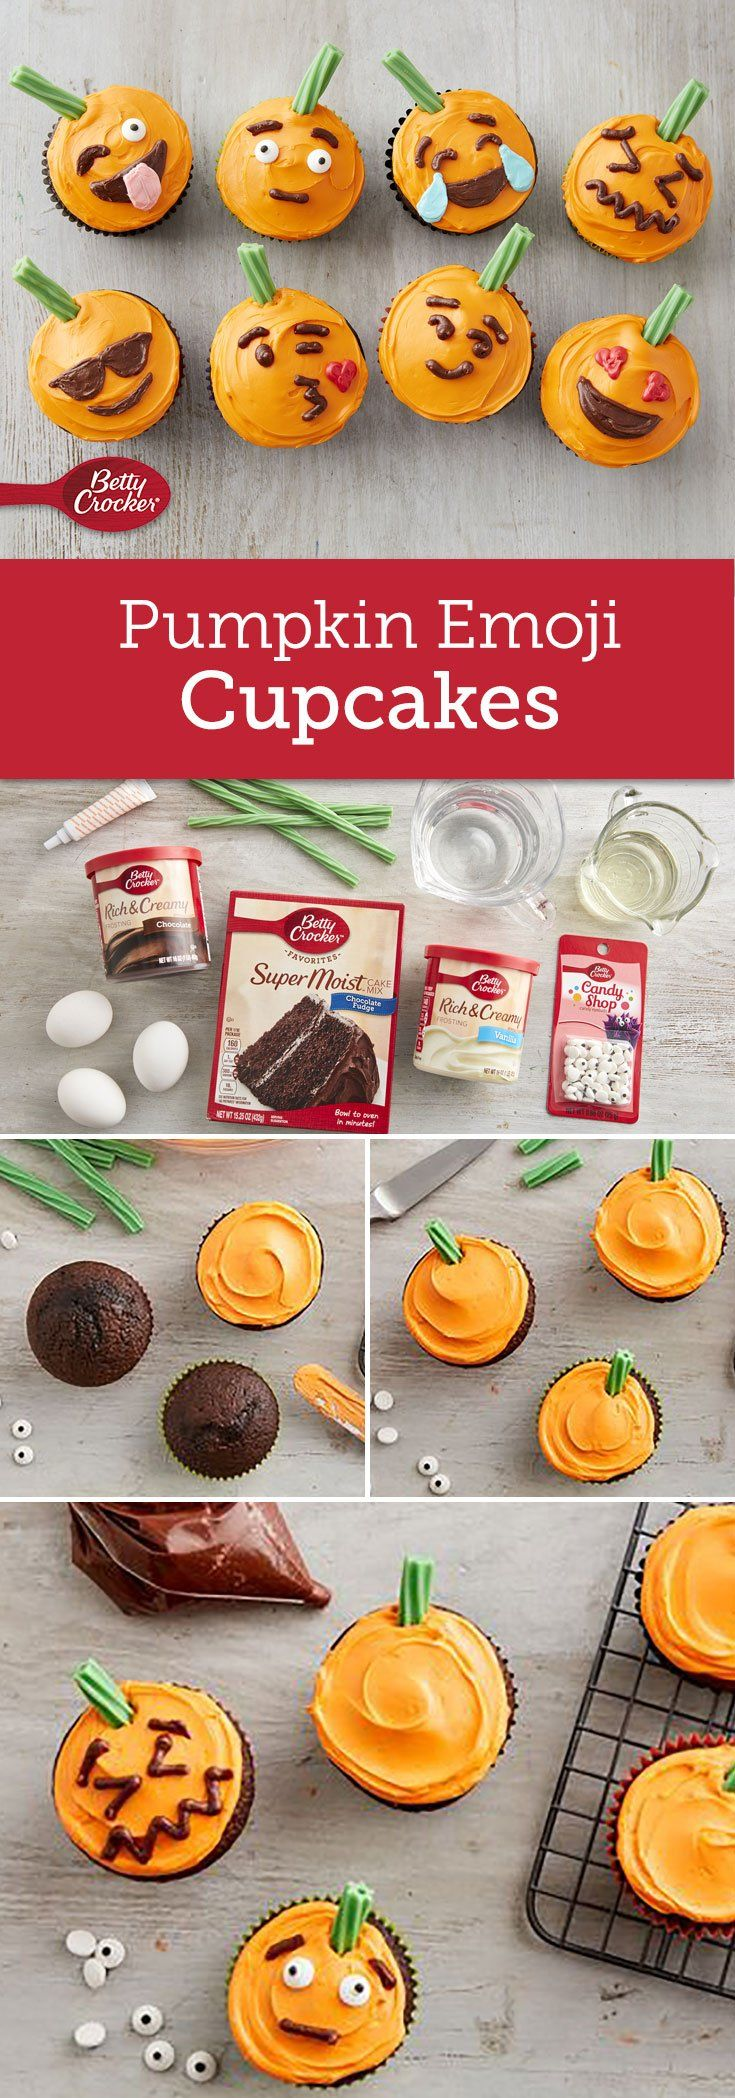 Emotions are on display this Halloween with these cute pumpkin cupcakes! Use a decorating bag fitted with small plain piping tip when using the chocolate frosting for a more polished decorating look.